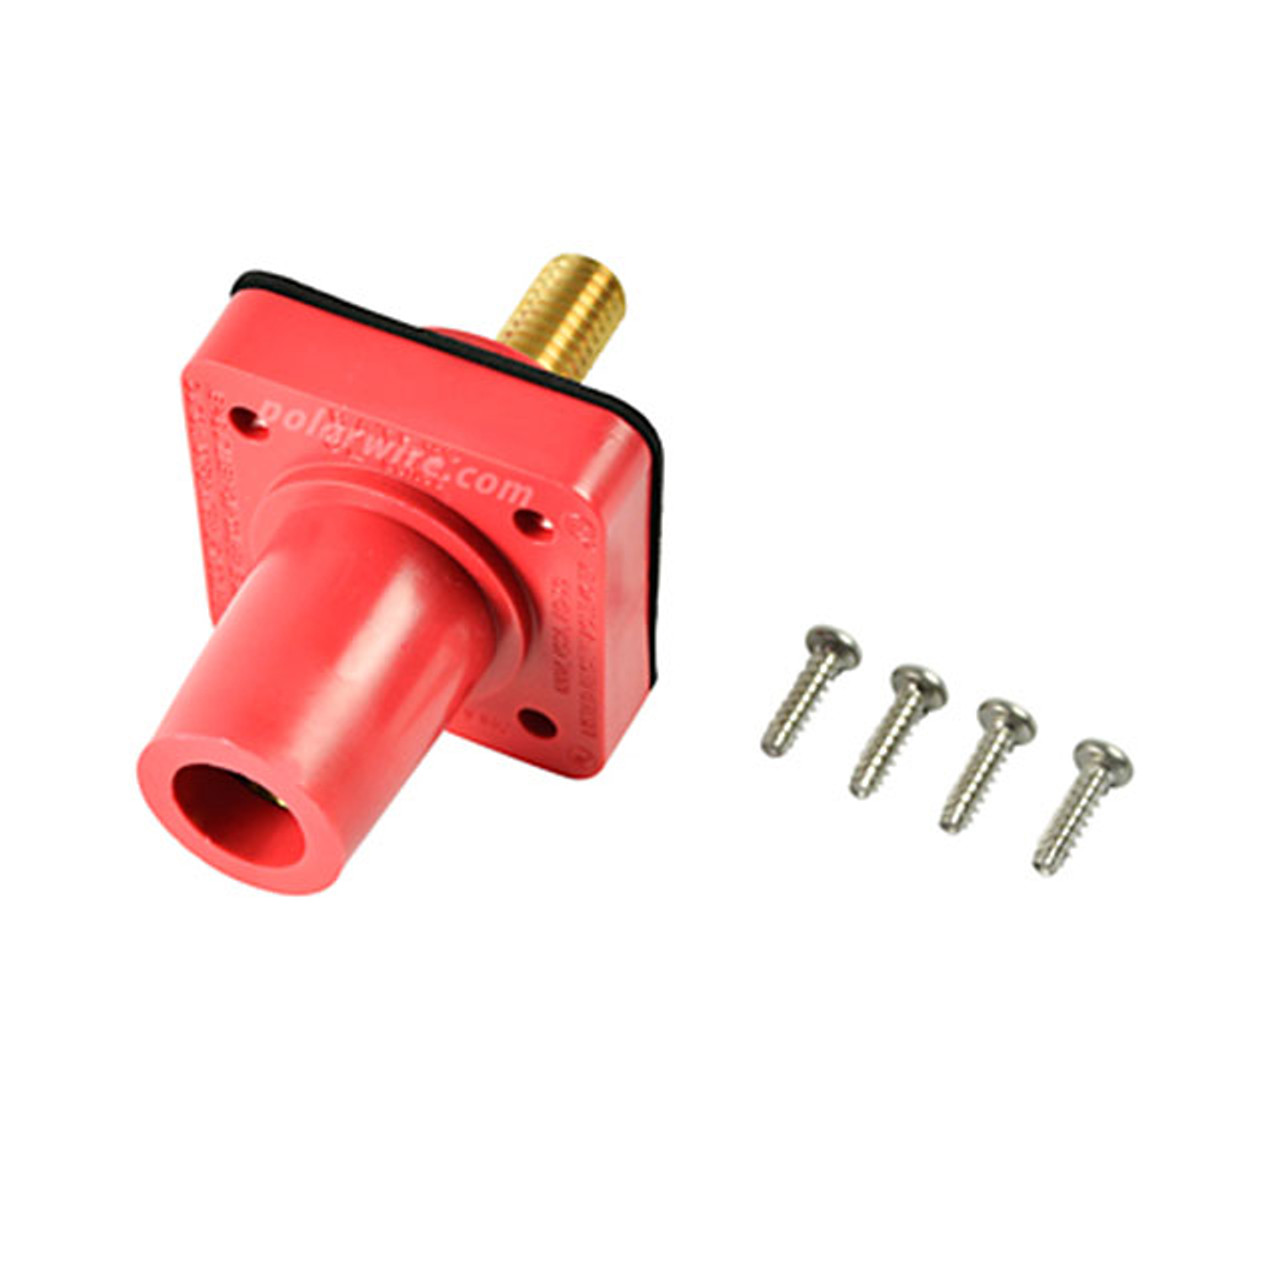 Marinco red 400A CL 16 Series female single pin panel mount cam lock connector with threaded stud for 2/0-4/0 AWG cable